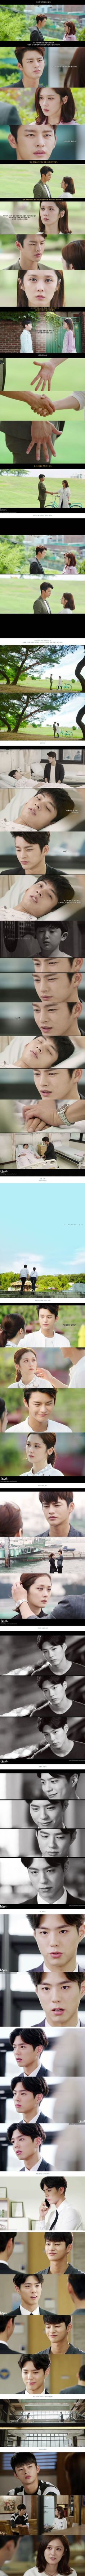 [Spoiler] Added episode 10 captures for the Korean drama 'Remember You' @ HanCinema :: The Korean Movie and Drama Database